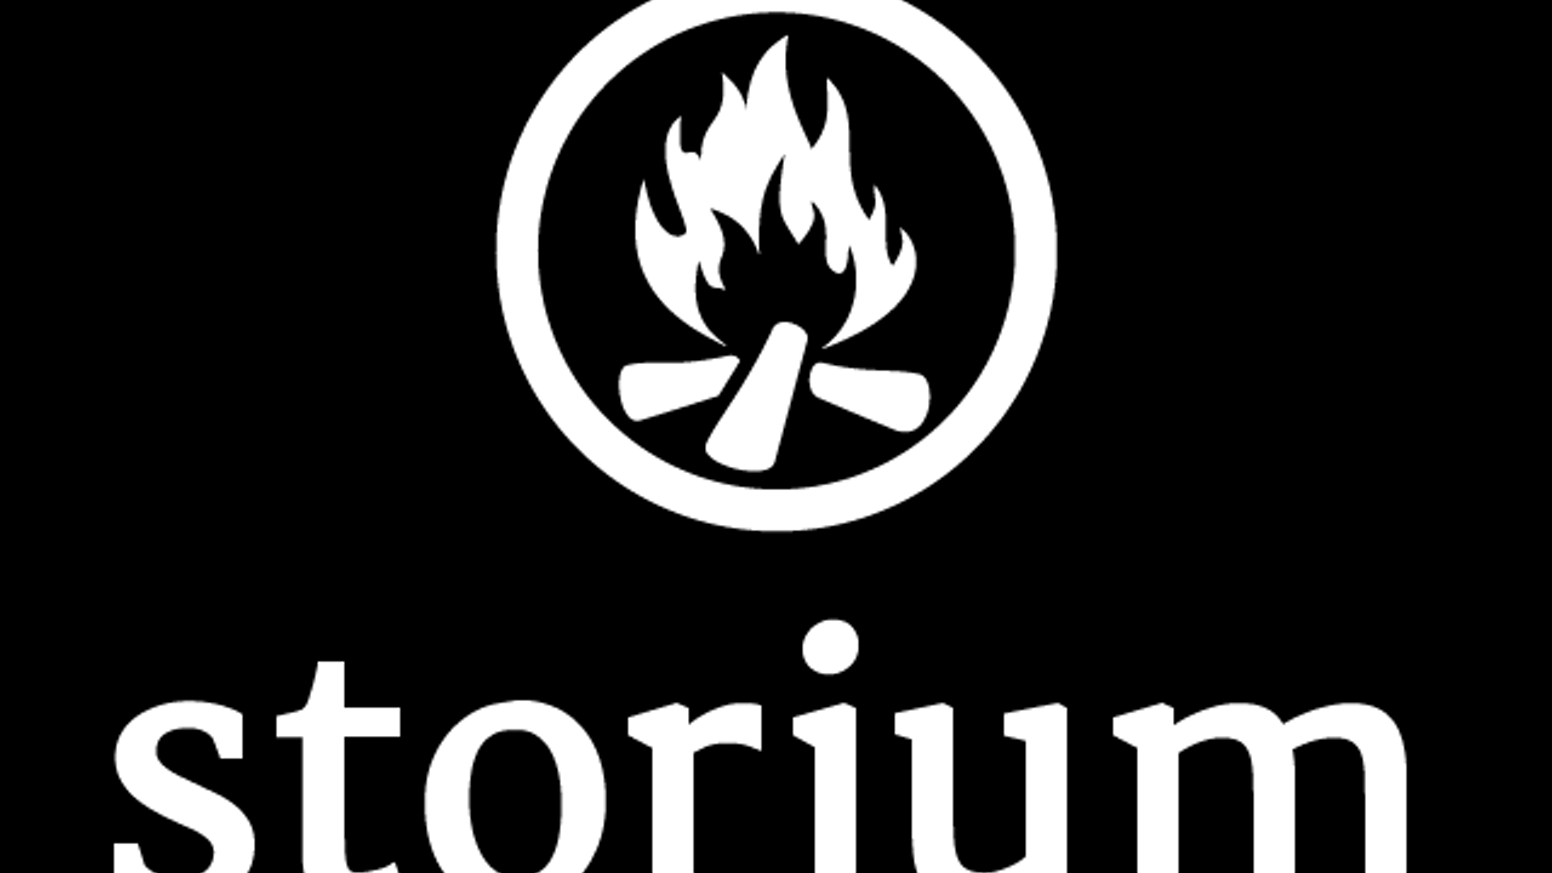 Storium is a new kind of online game where you and your friends tell any story you can imagine, together.